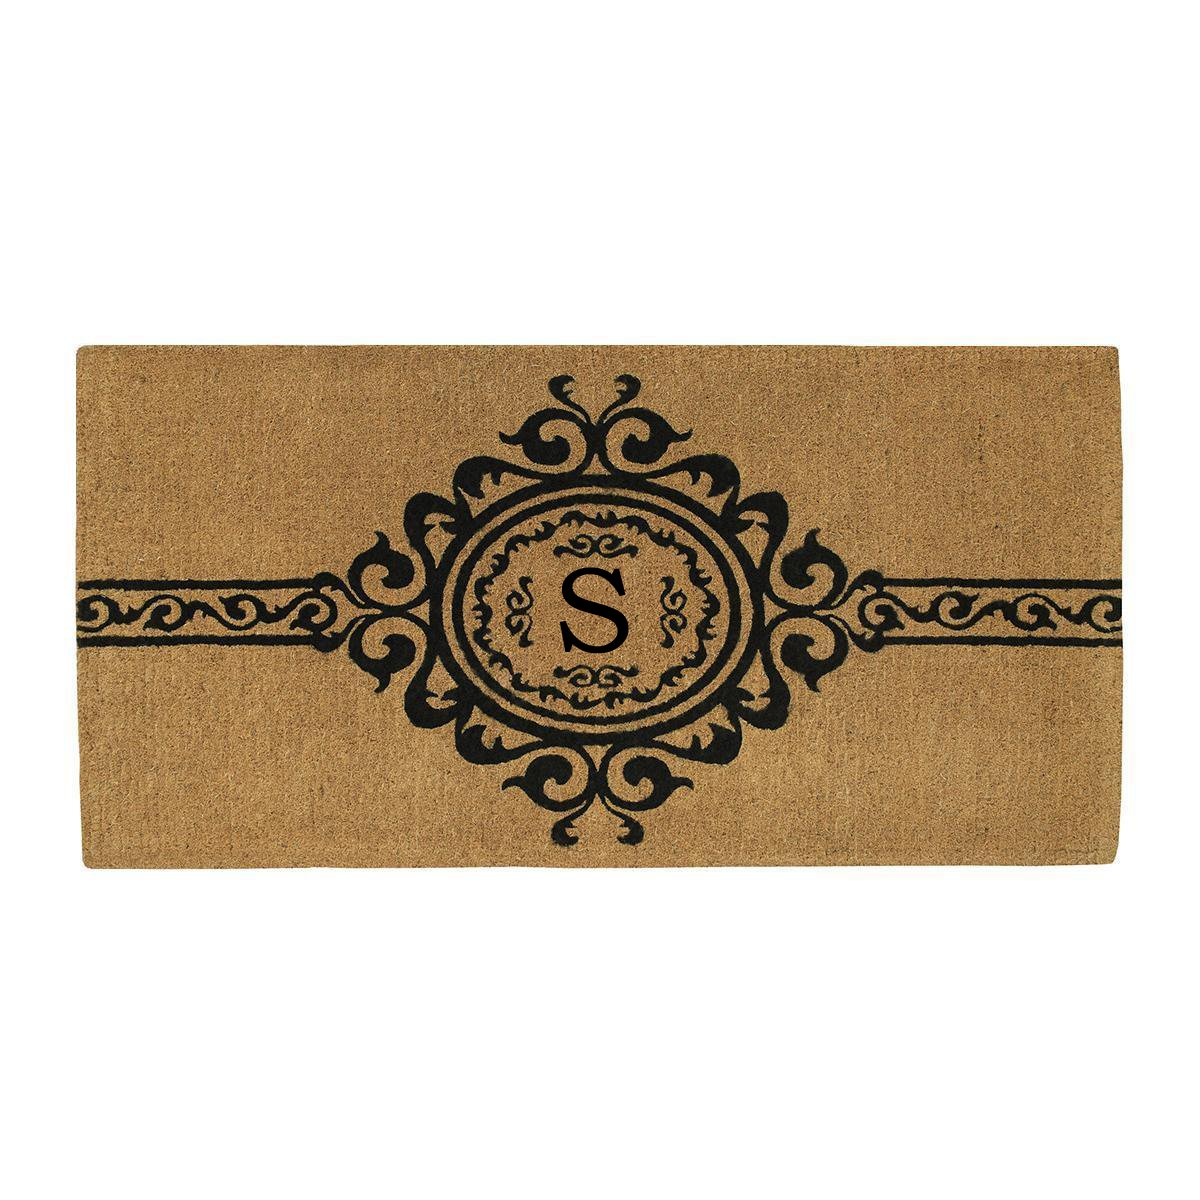 Home & More 180073672S Garbo Extra-thick Doormat, 36'' x 72'' x 1.50'', Monogrammed Letter S, Natural/Black